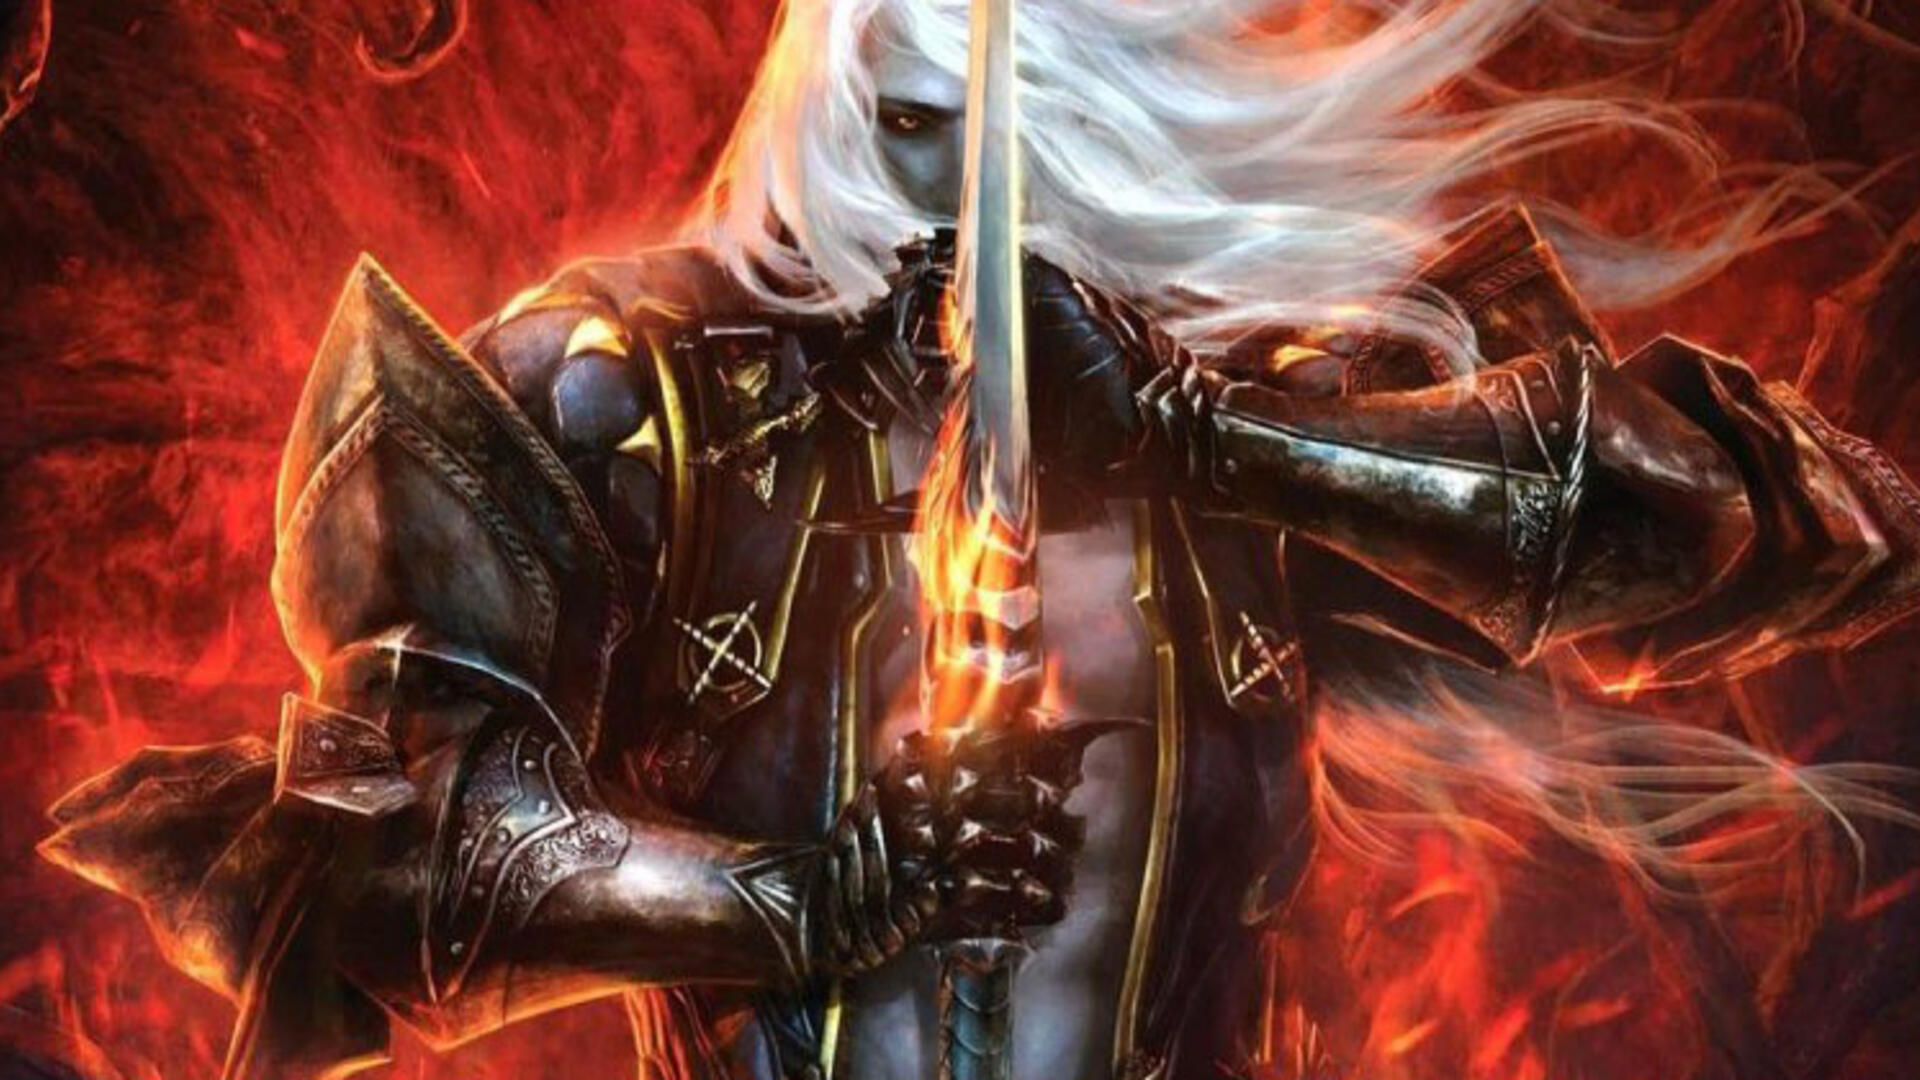 Castlevania: Lords of Shadow 2 PS3 Review: Dracula Defanged